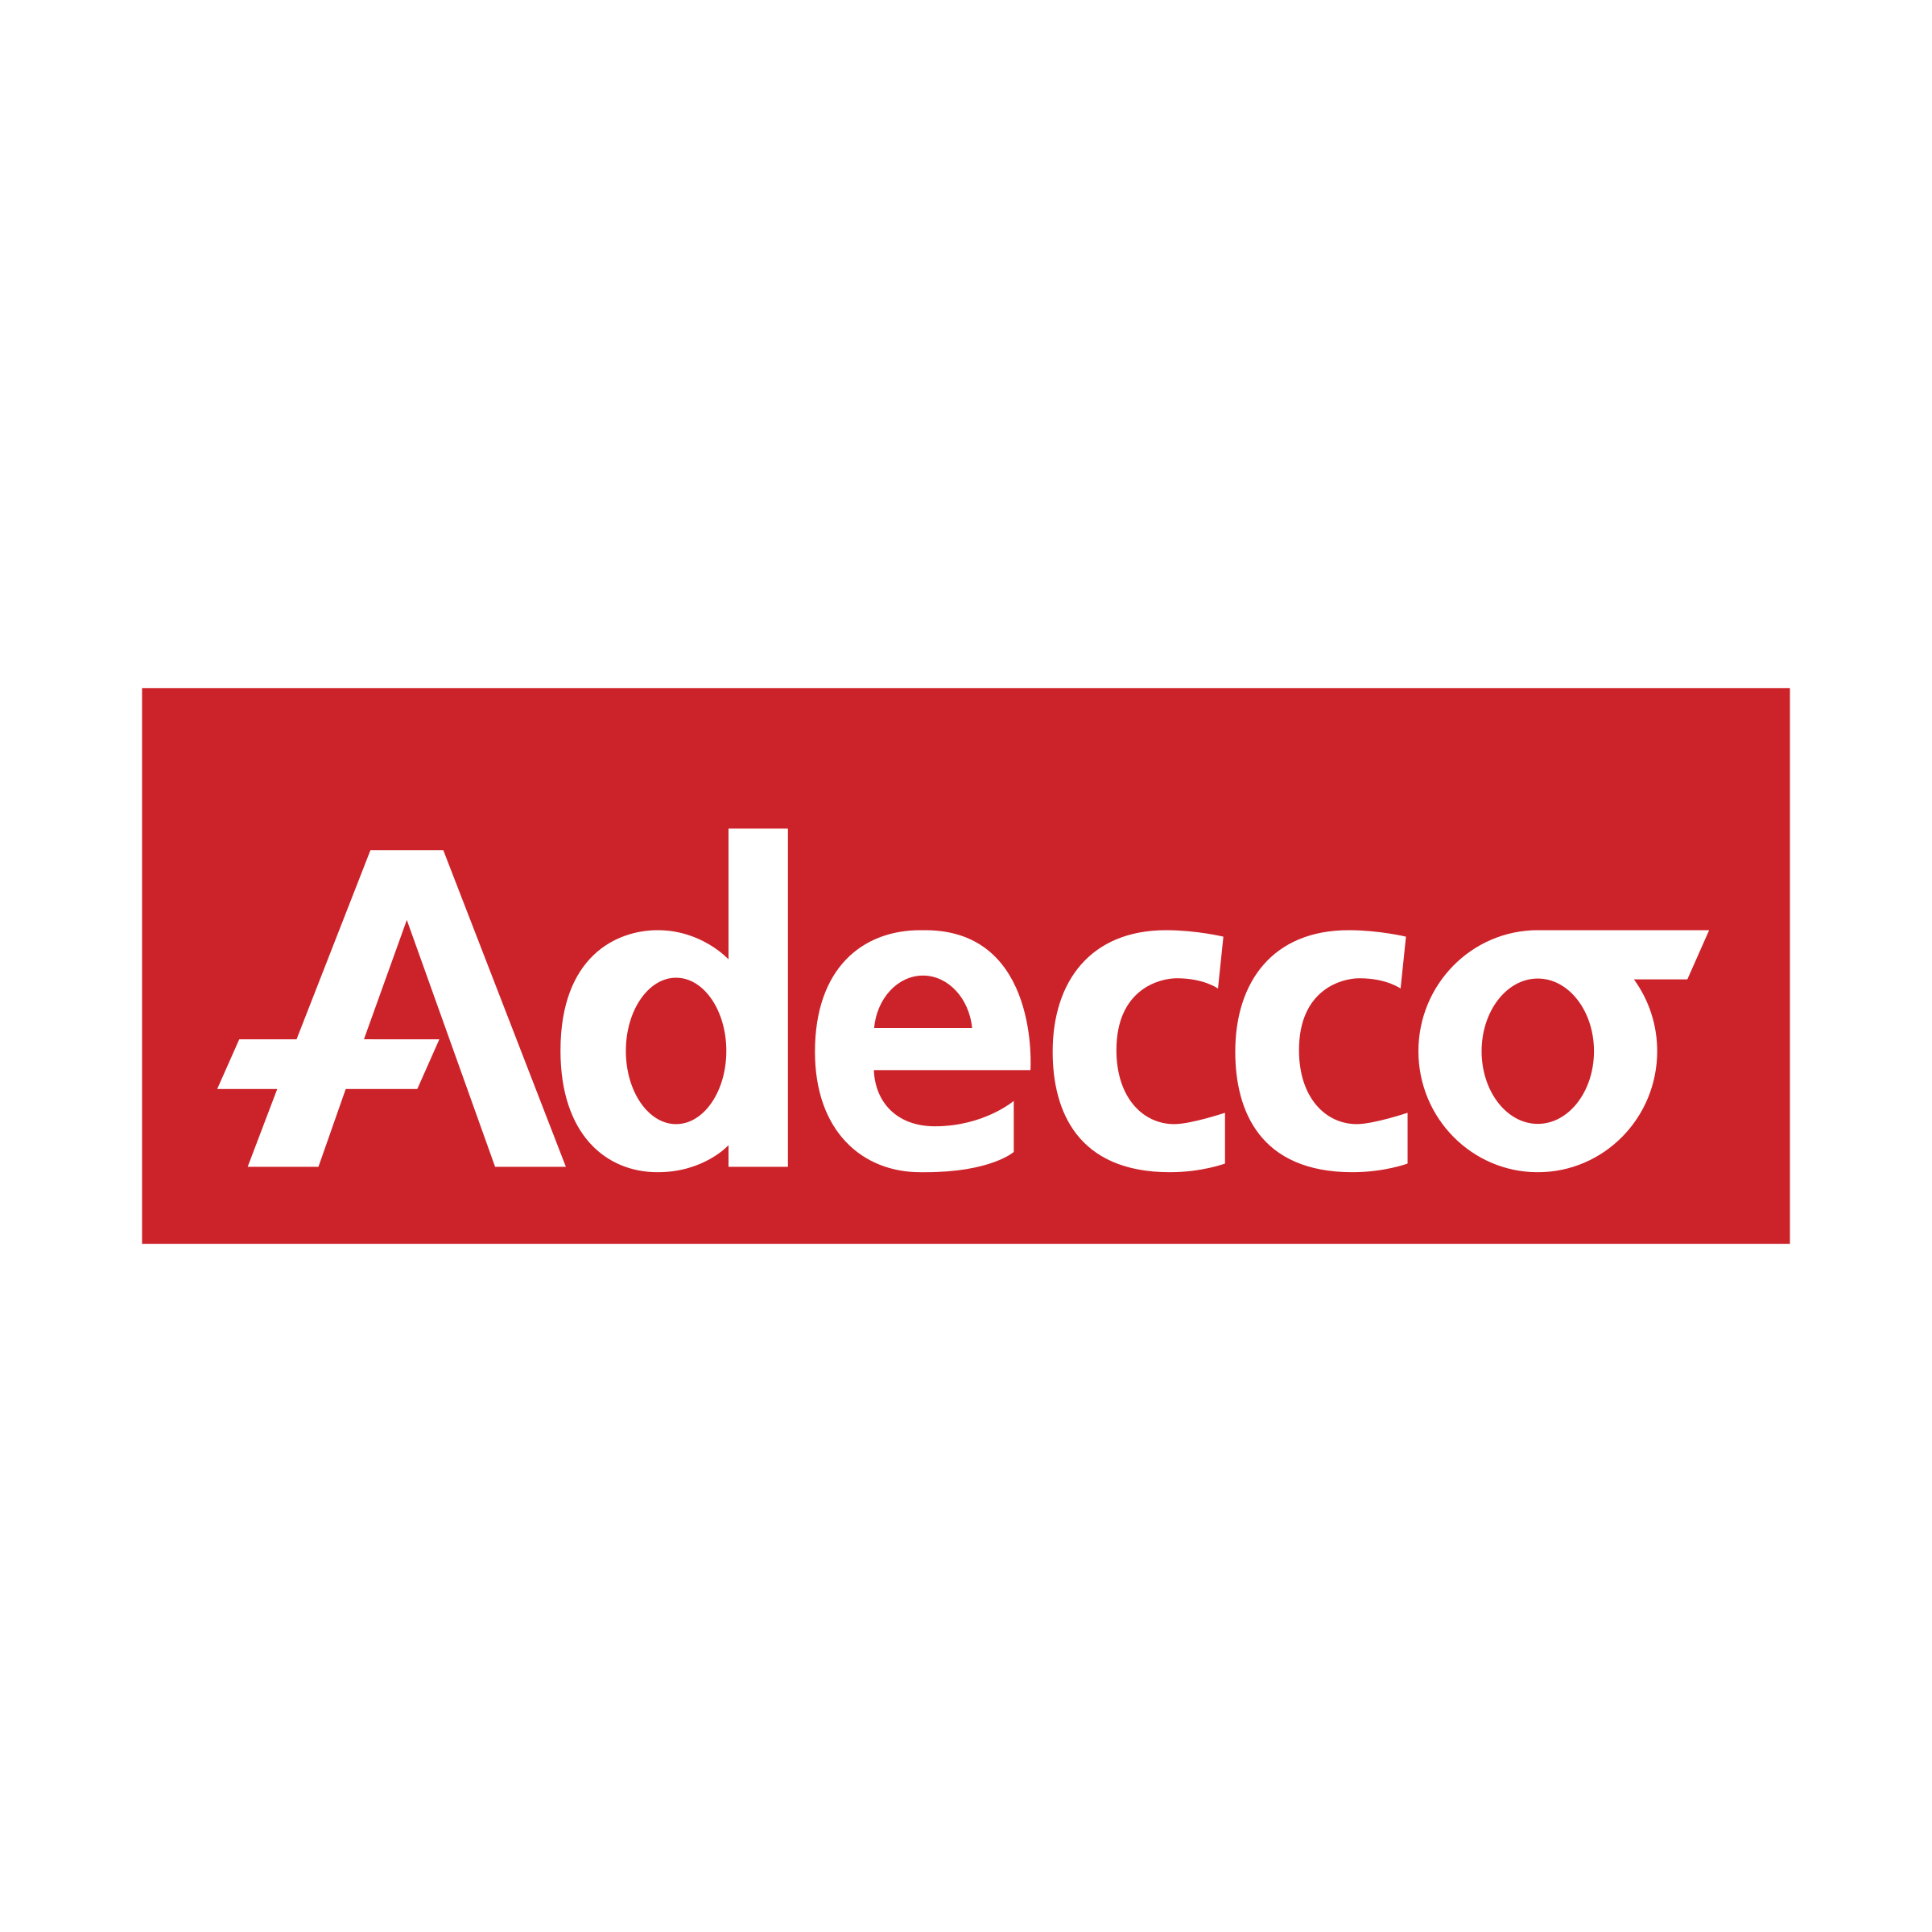 Adecco logo download free clip art with a transparent.